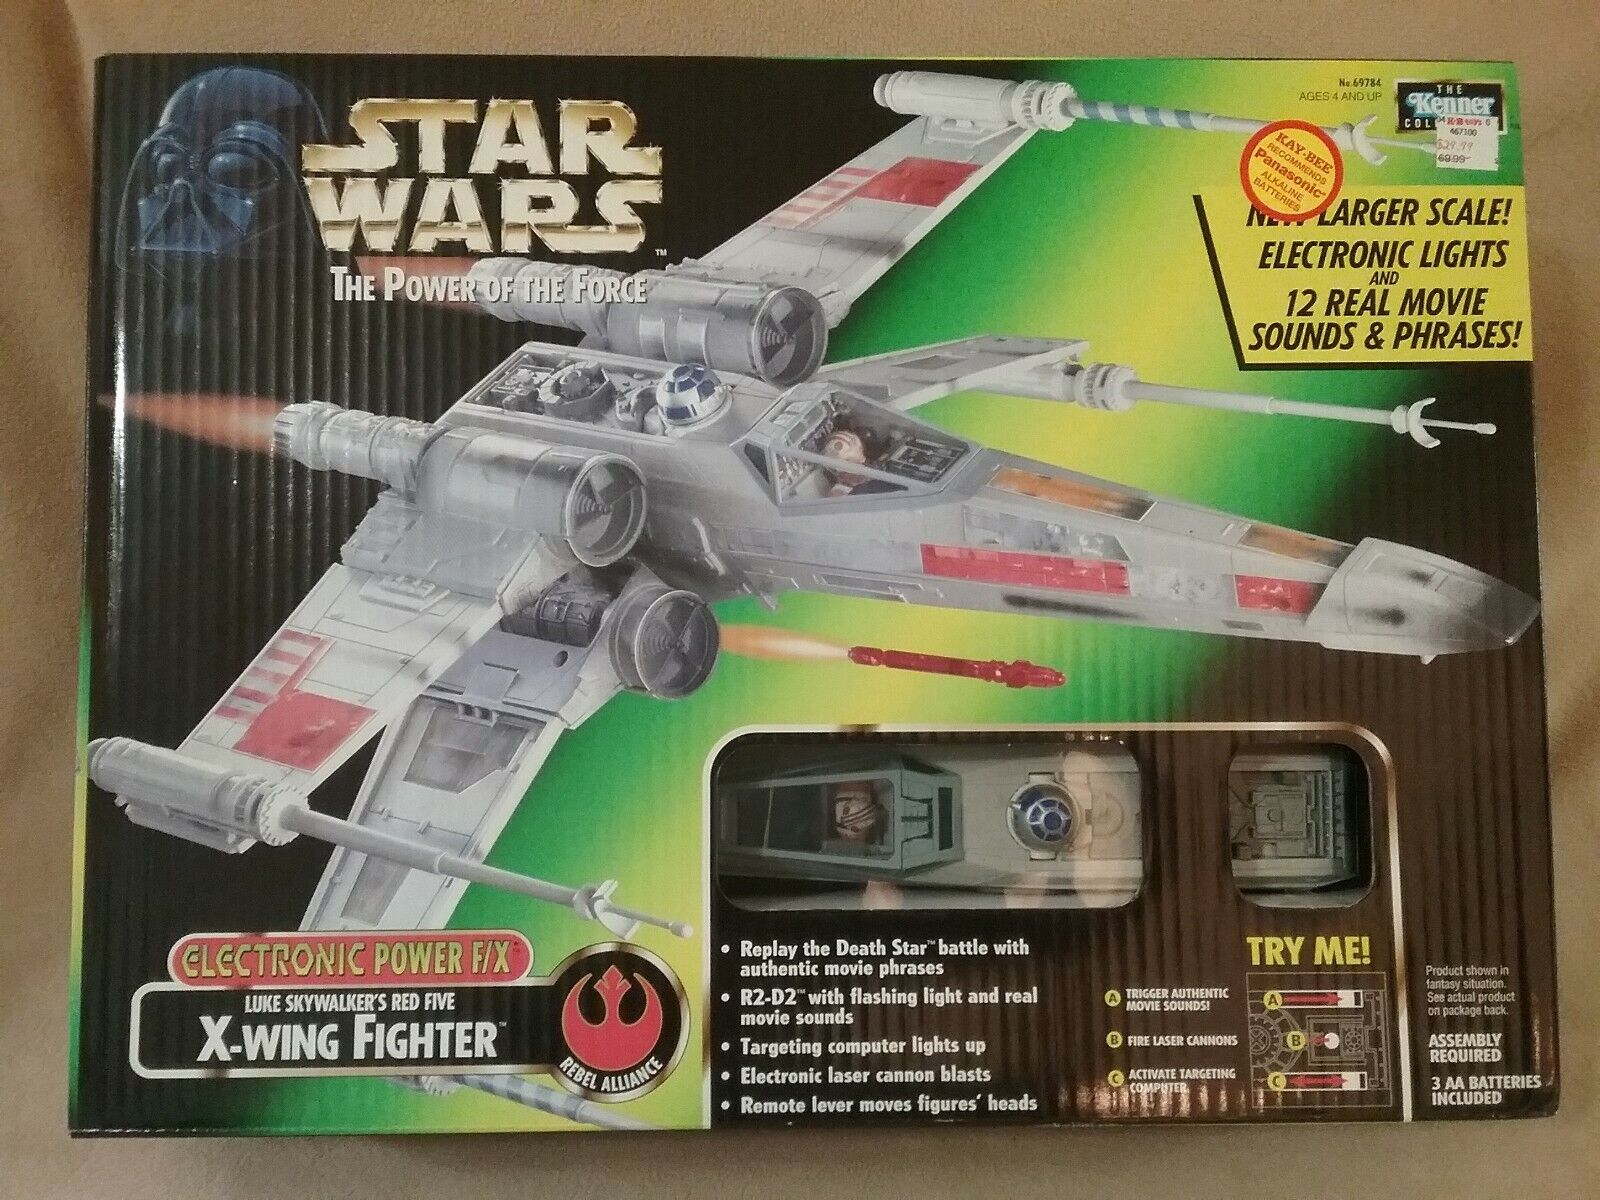 Stern Wars Electronic F X X-WING FIGHTER Luke's rot Five Power of the Force  02